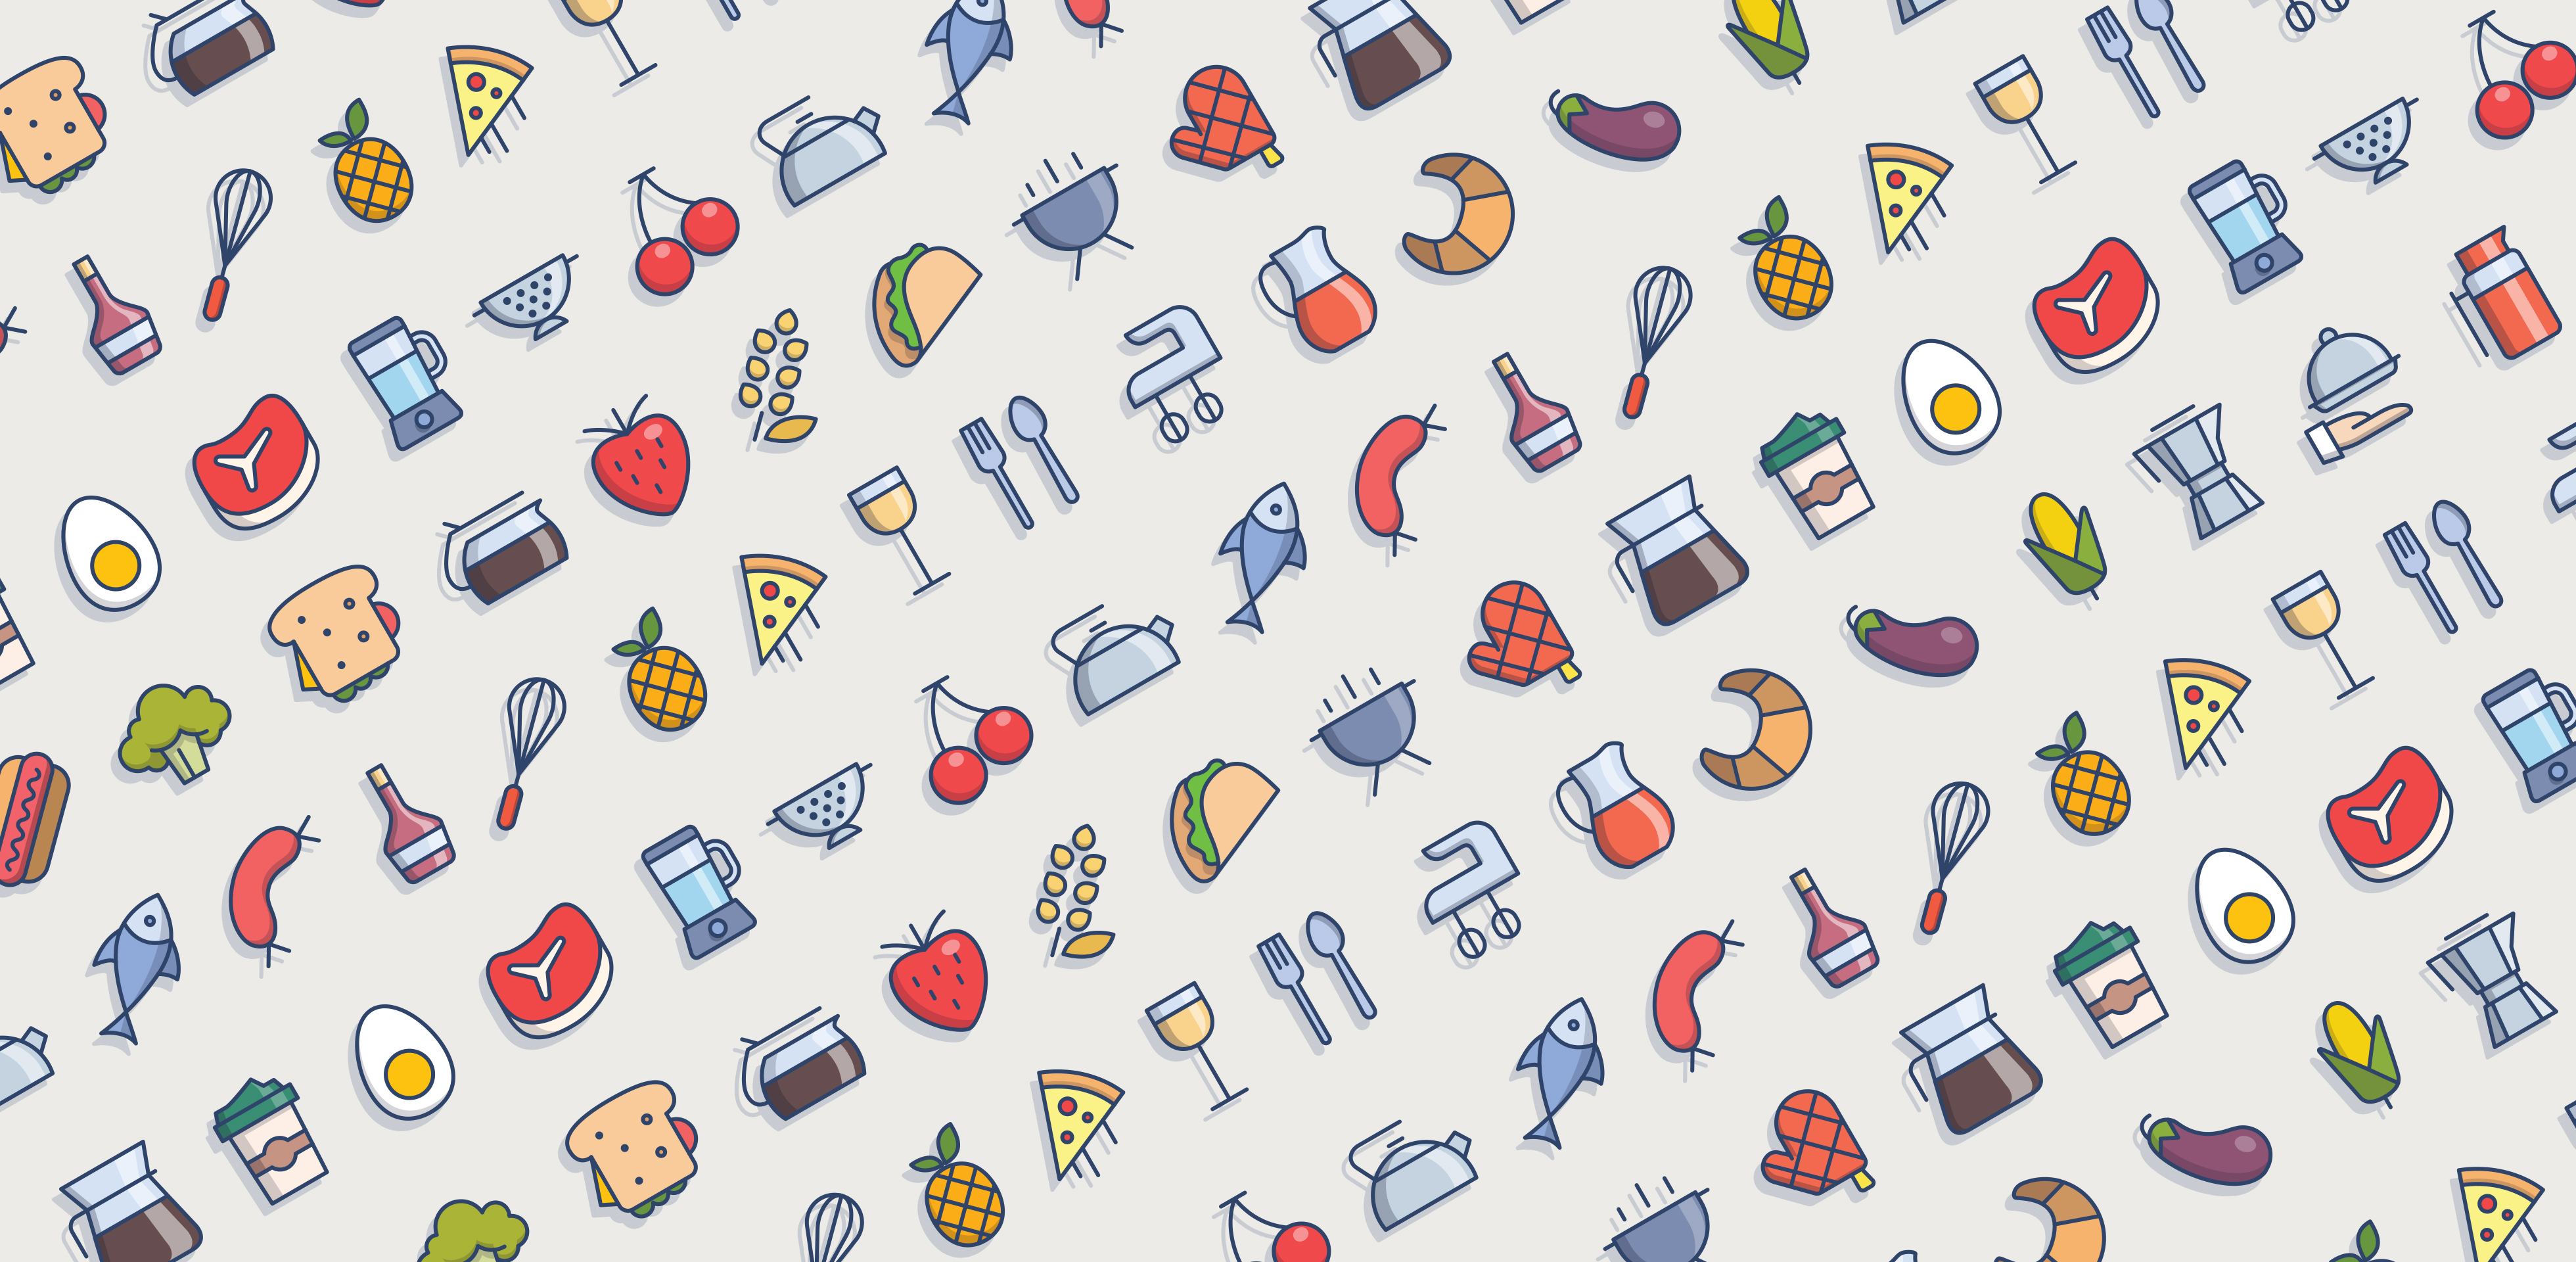 Free Download: Food Icon Pack